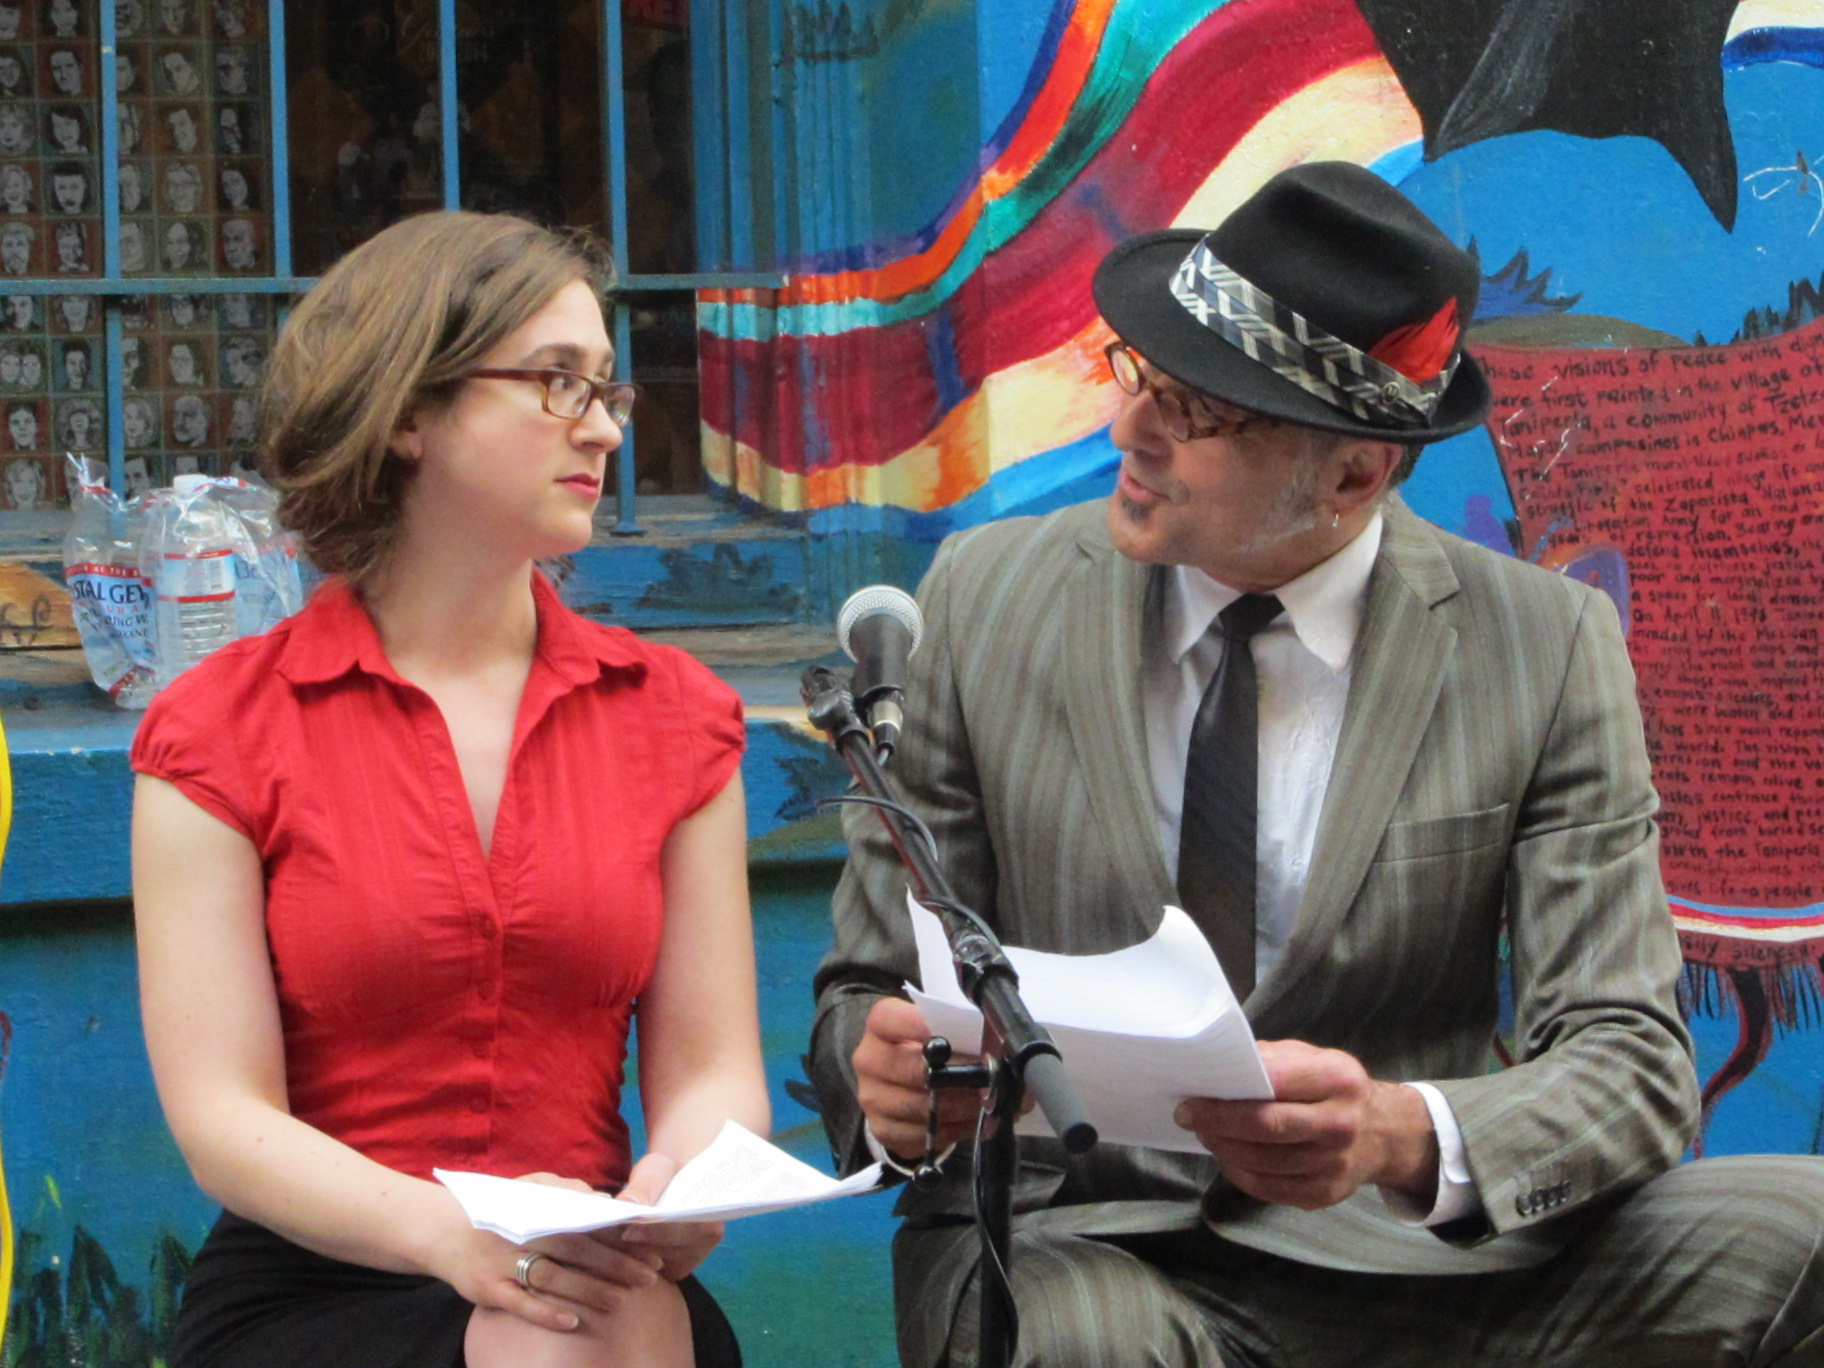 Two performers, Beck Hirshfeld, a young woman in a red button down shirt and glasses, Steffanos X, a middle-aged man in a grey striped suit and a nice fedora with a red feather, seated in front of a colorful mural.